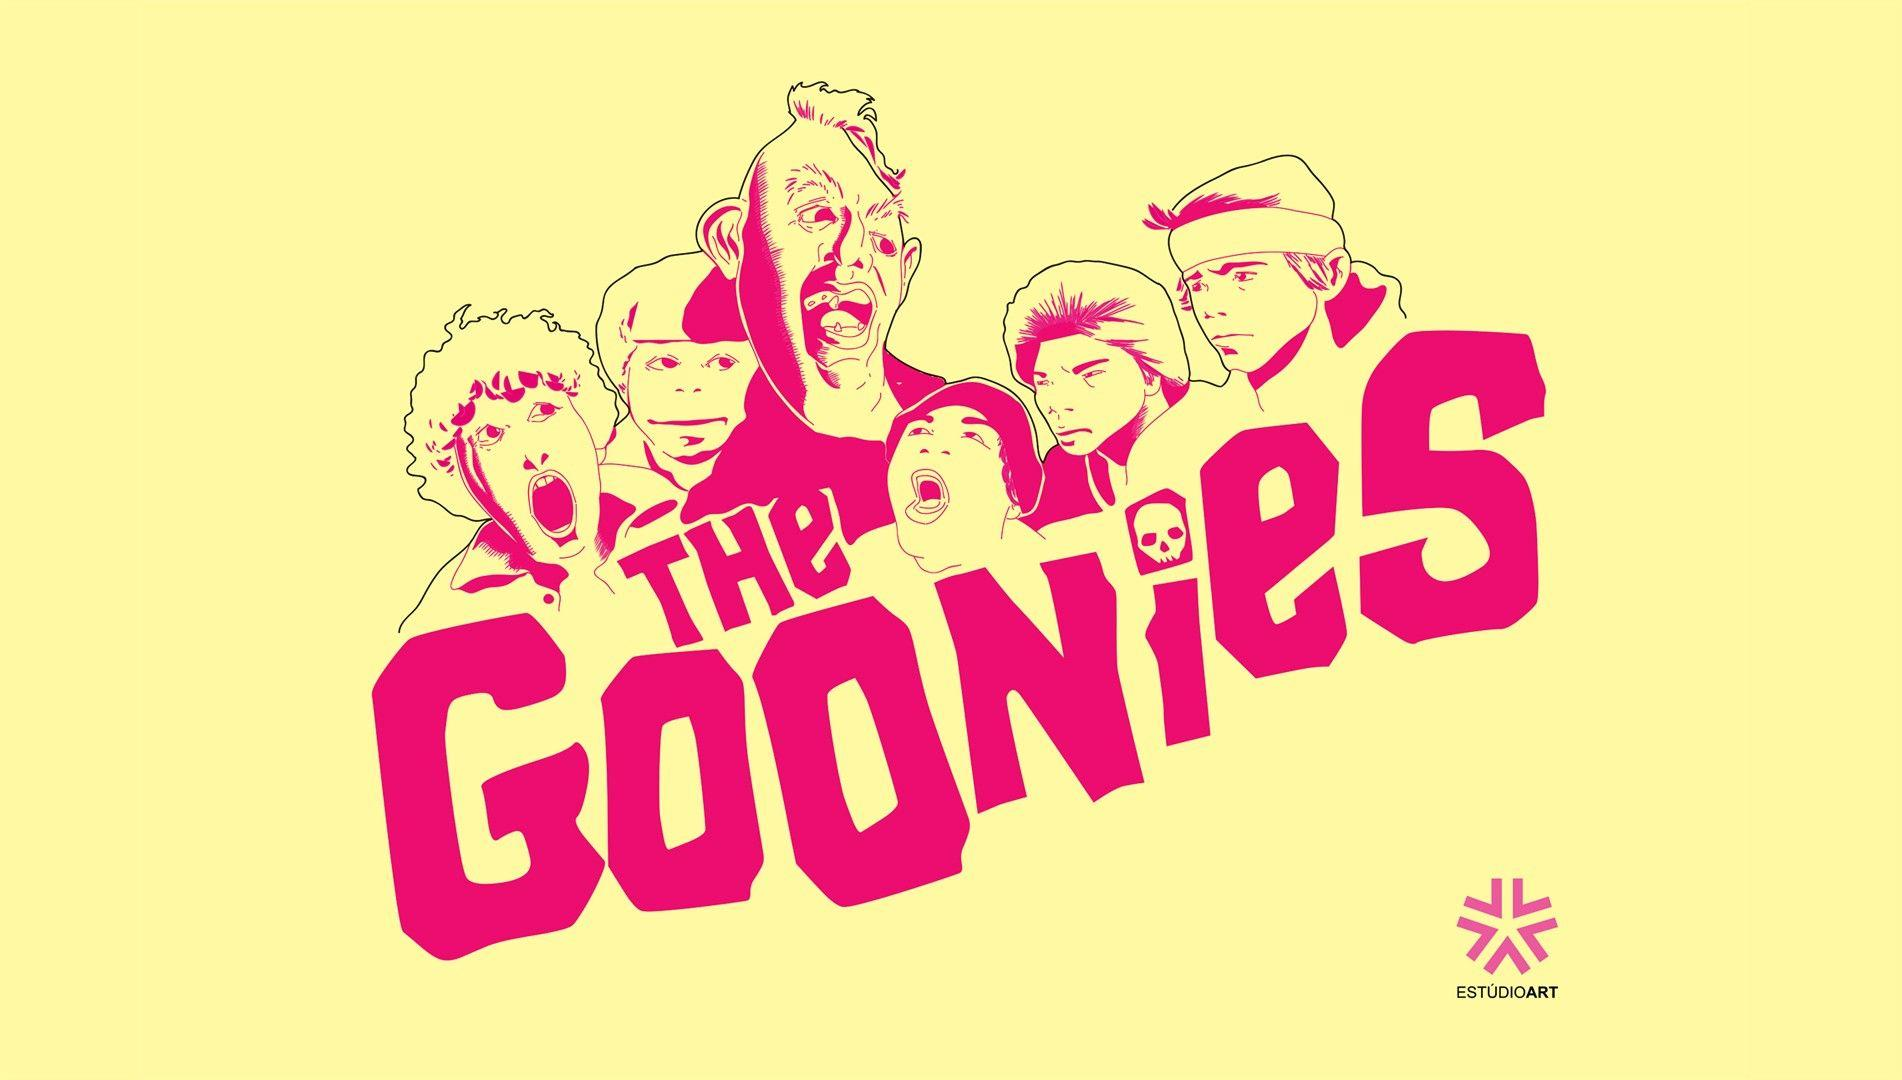 Anyone a fan of the Goonies? : wallpapers